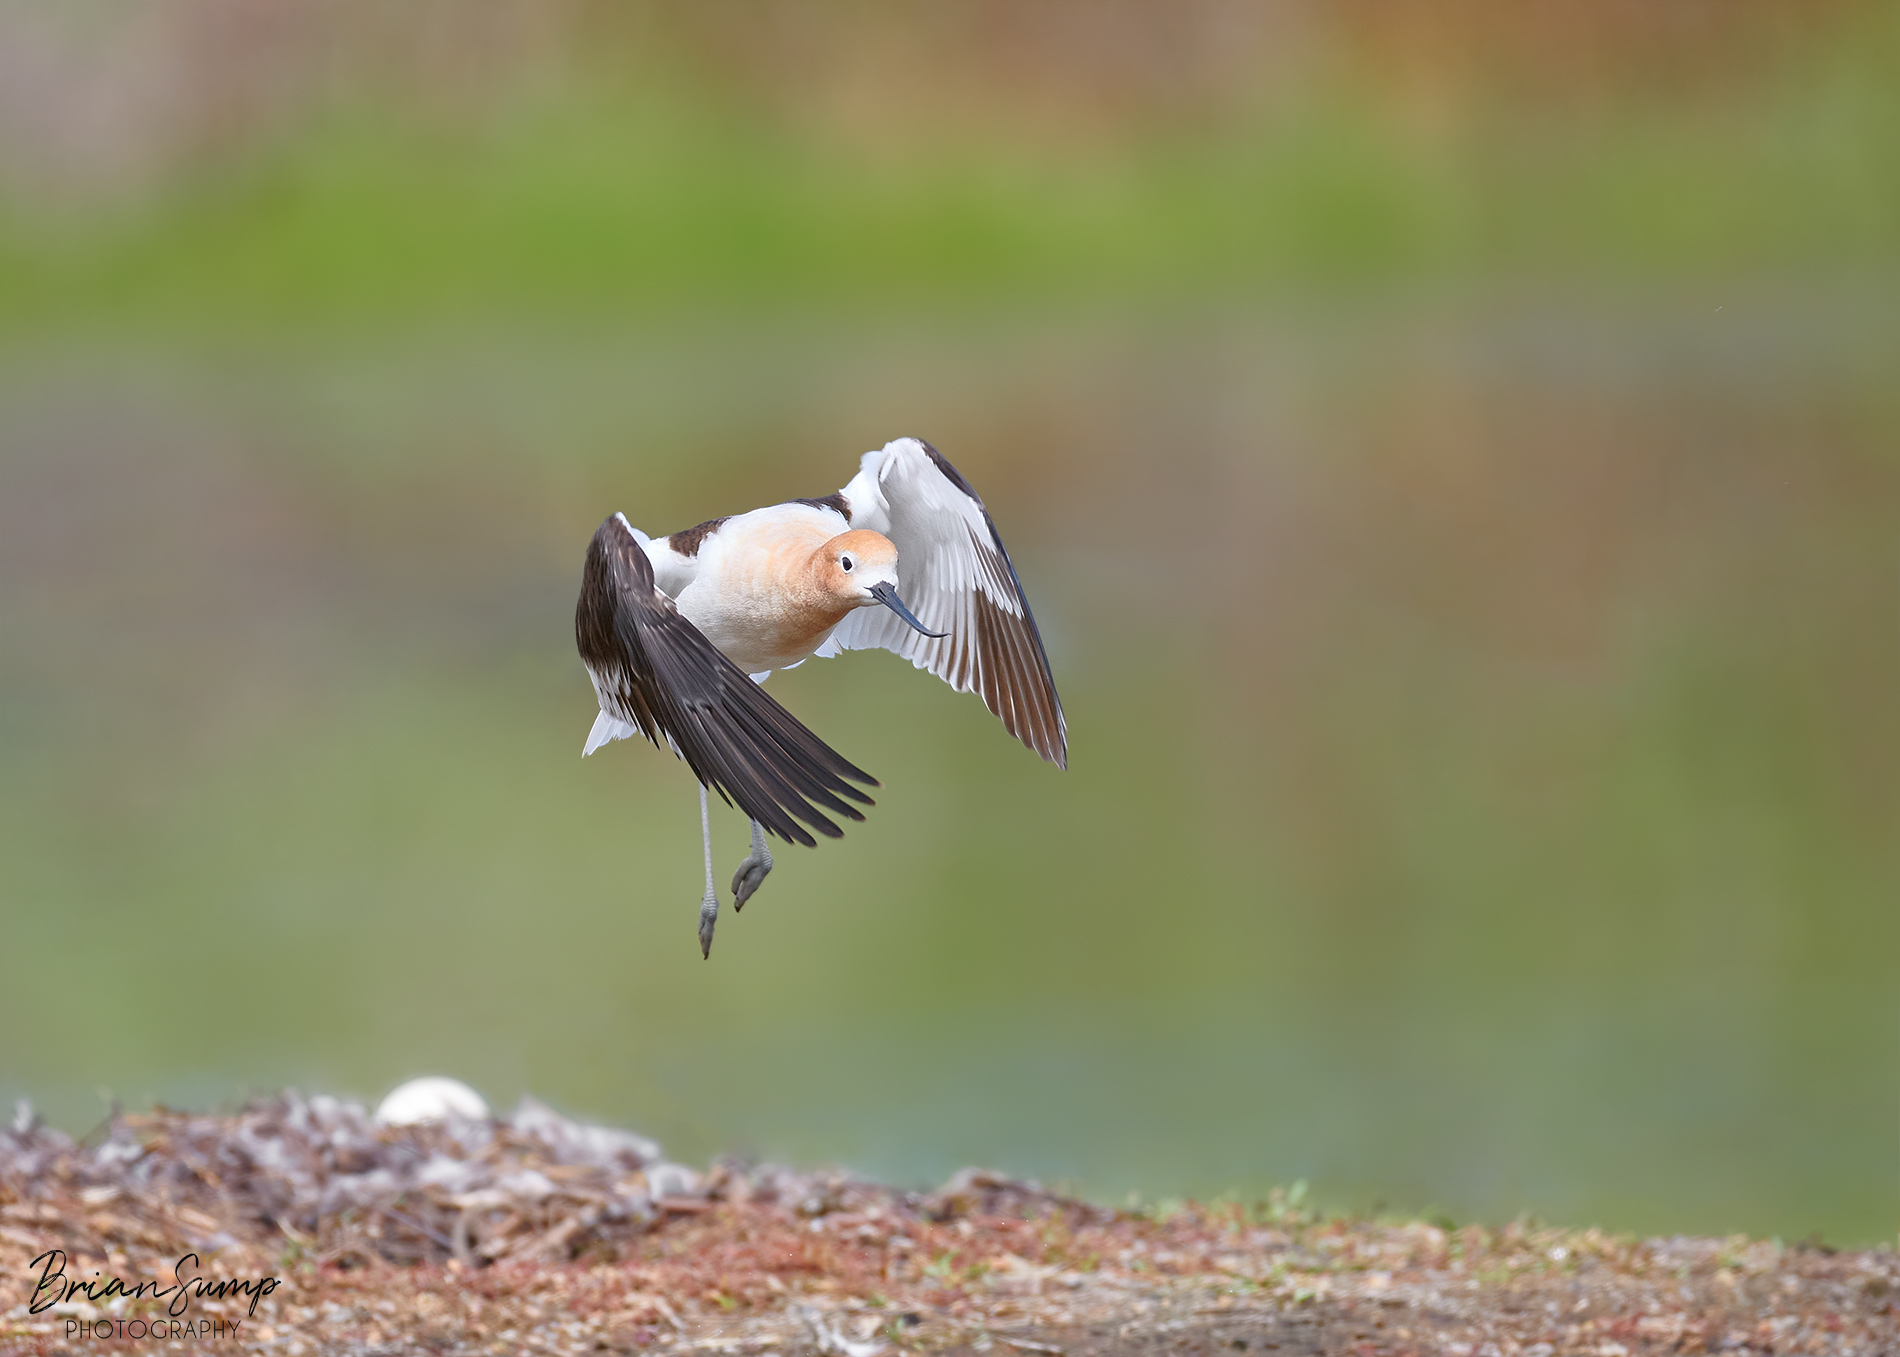 Name:  2020-05-12-Avocet-Leaving-the-nest-Brian-Sump_6338-SIg-FORUM.jpg Views: 67 Size:  572.9 KB